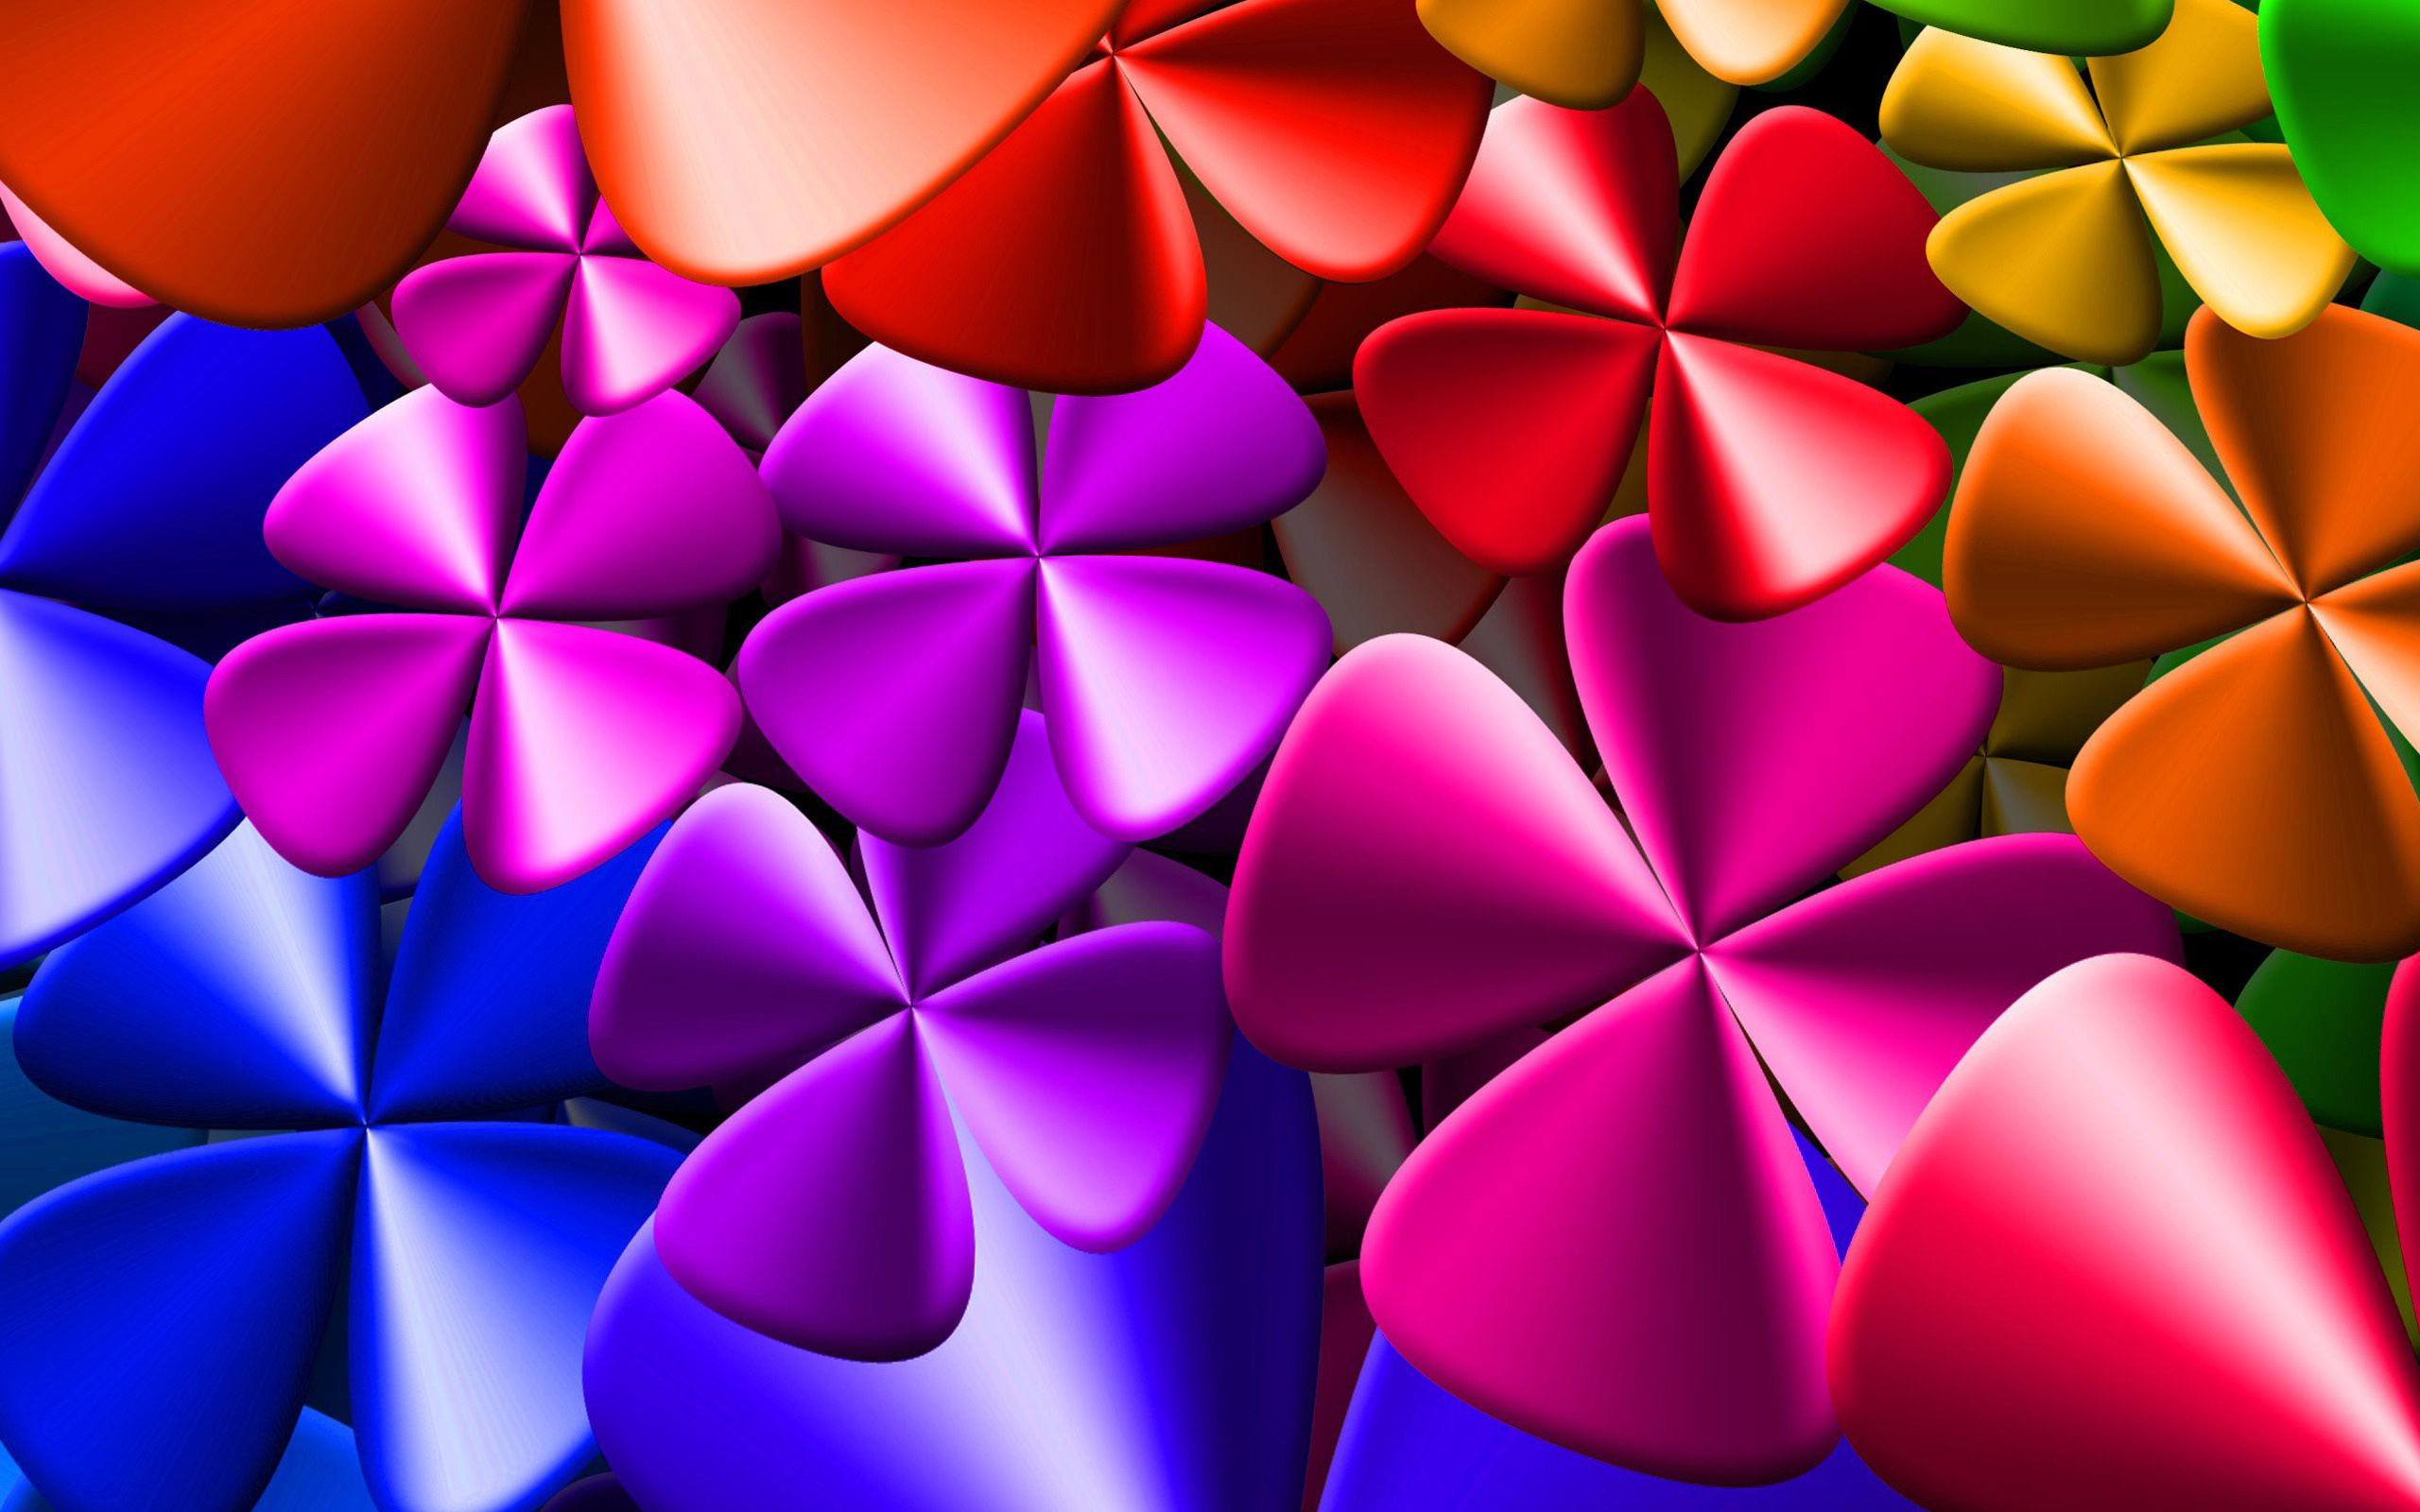 Colorful 3D Clovers